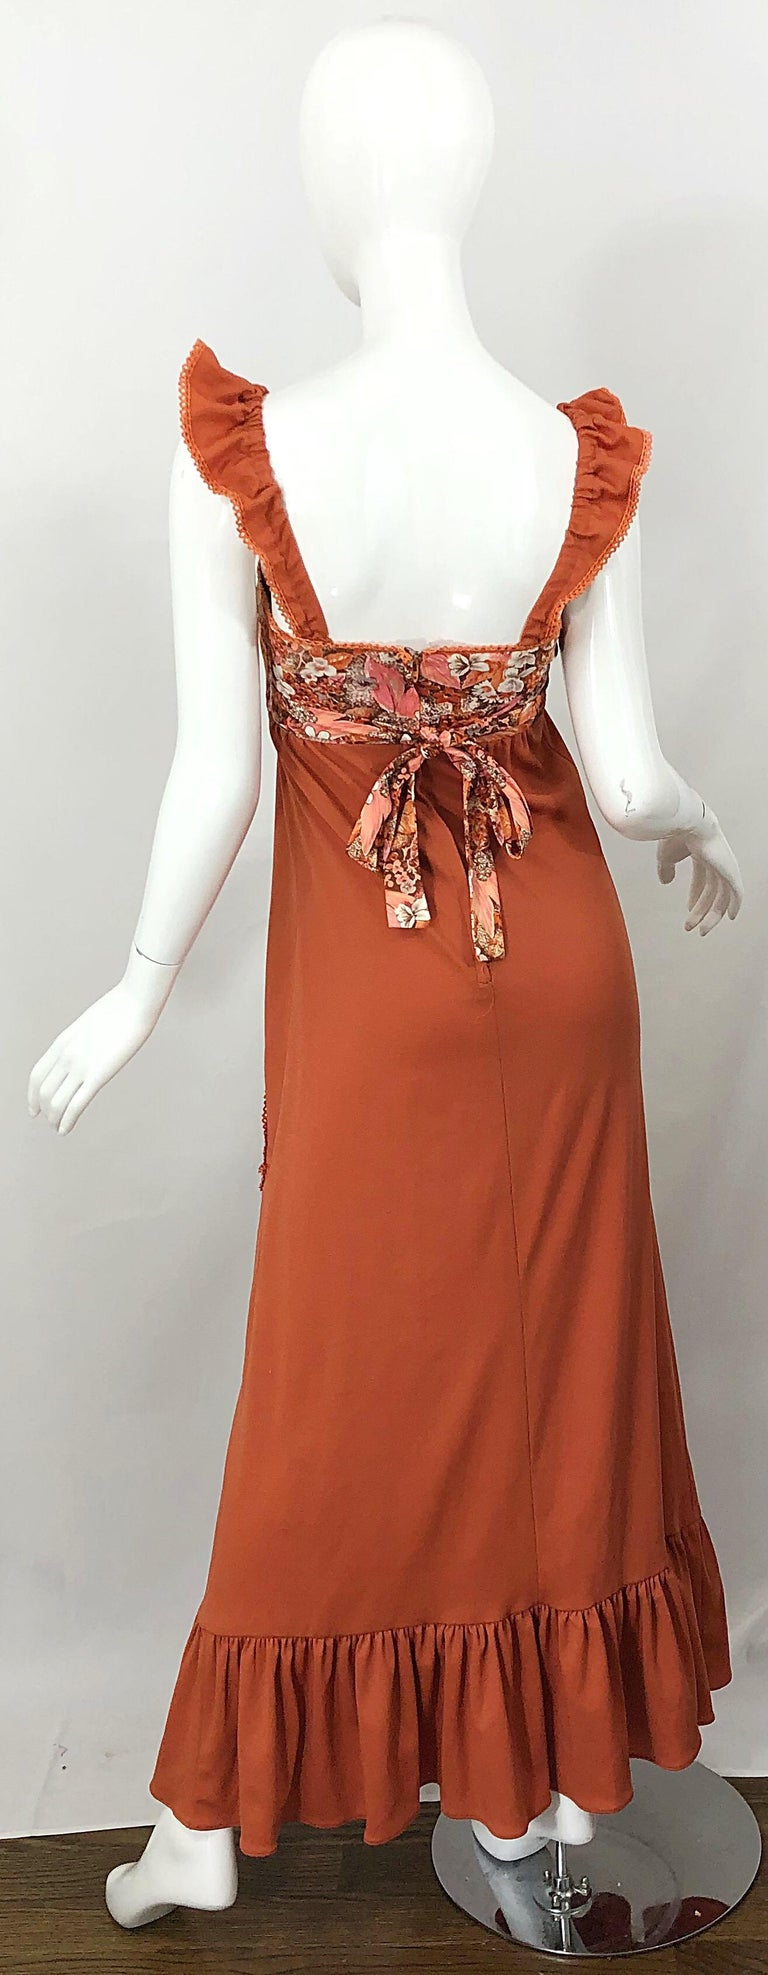 1970s Burnt Orange Patchwork Flowers Boho Vintage 70s Jersey Autumnal Maxi Dress In Excellent Condition For Sale In Chicago, IL